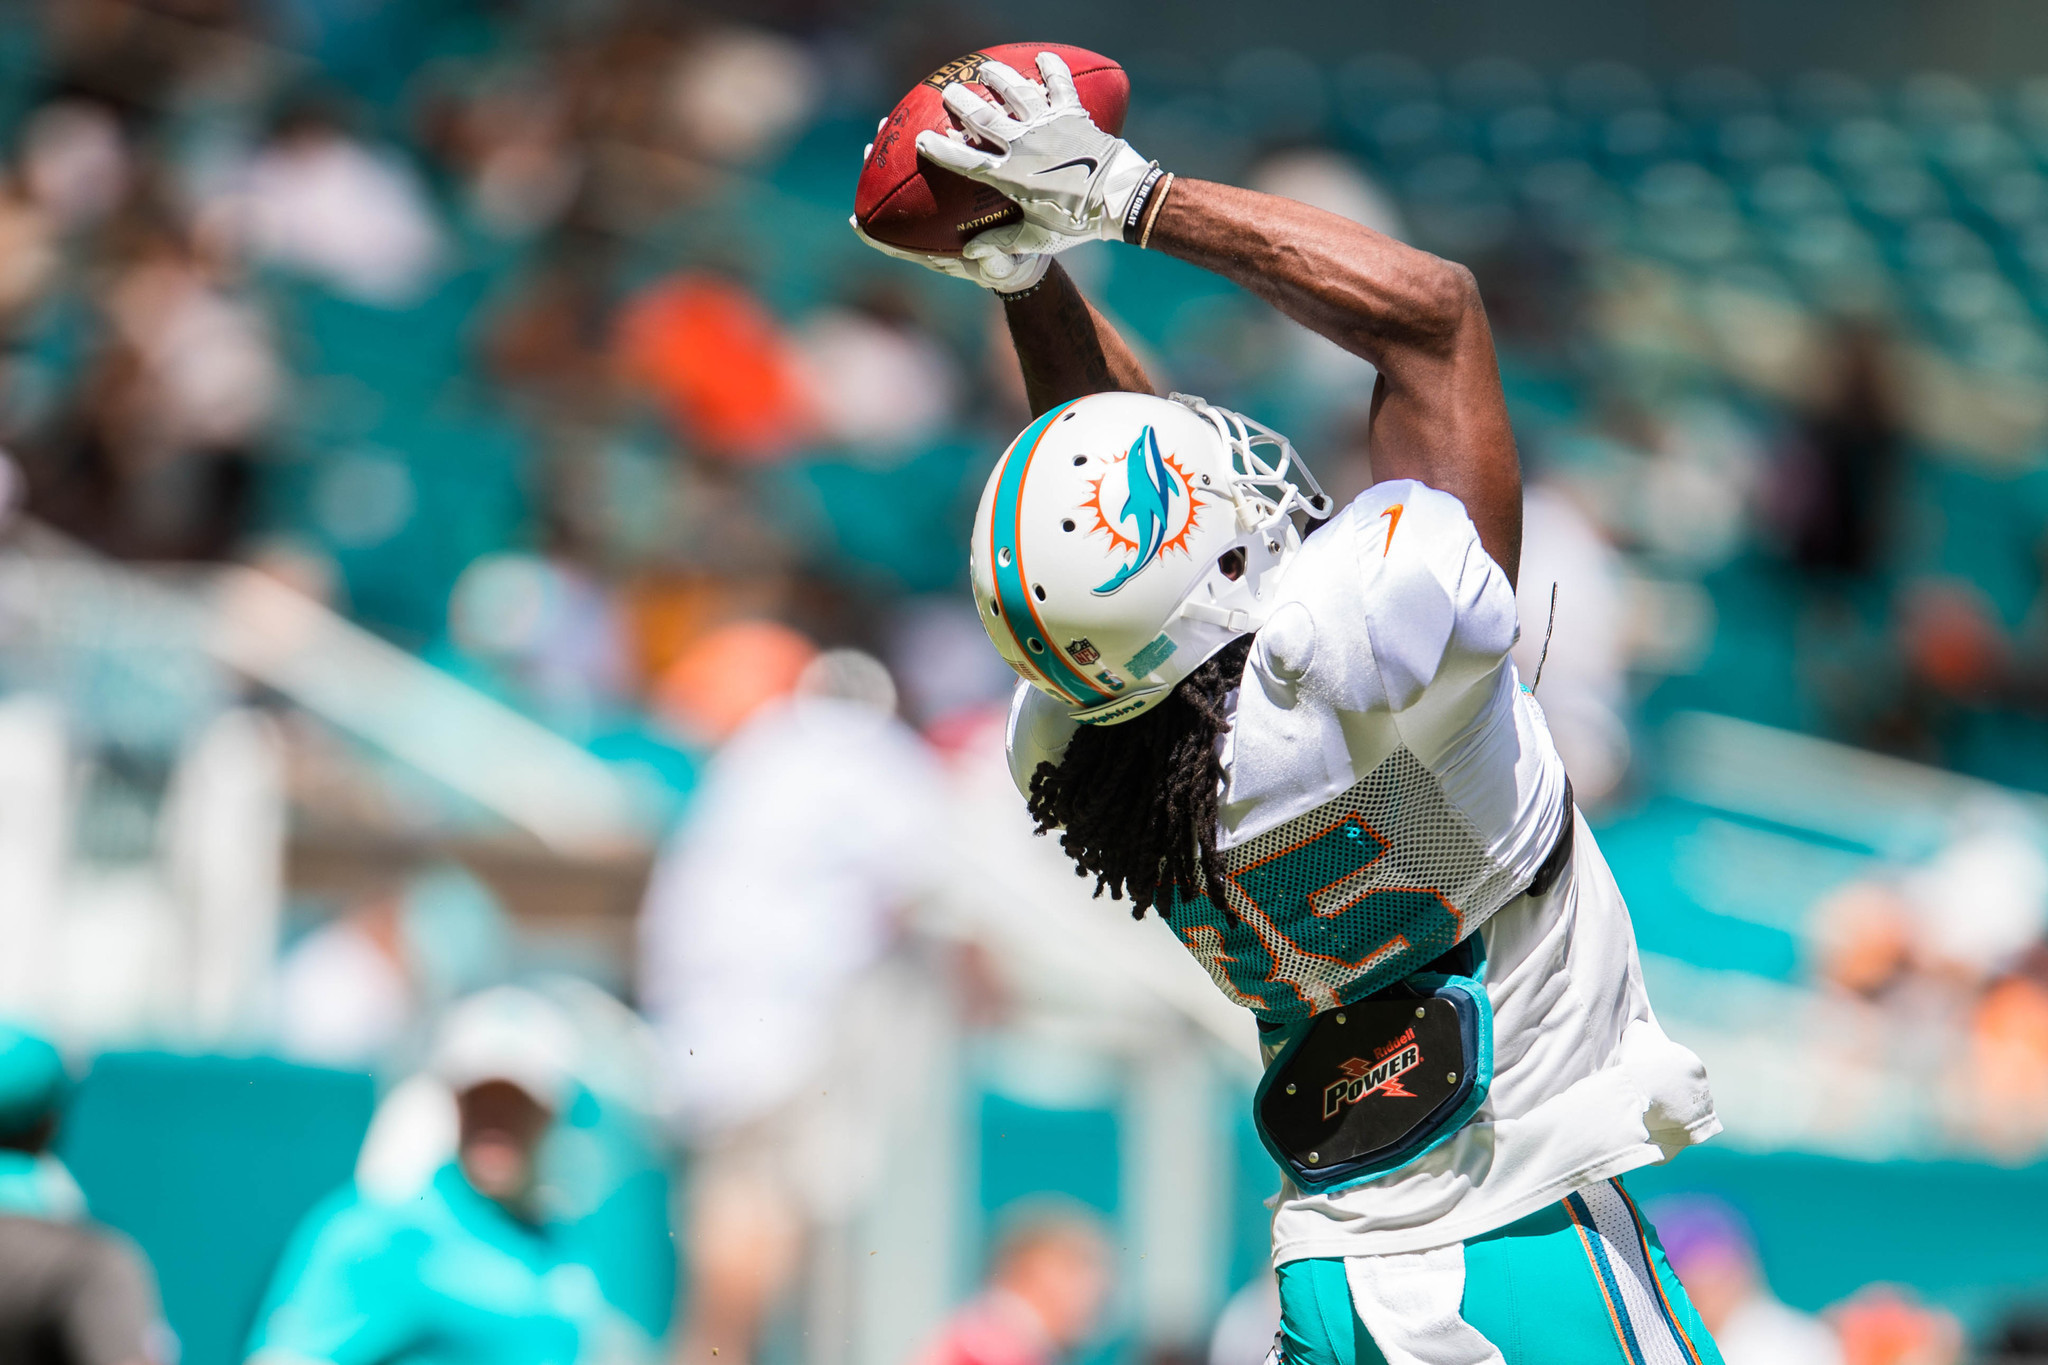 Sfl-photos-from-the-miami-dolphins-scrimmage-at-hard-rock-stadium-20180804